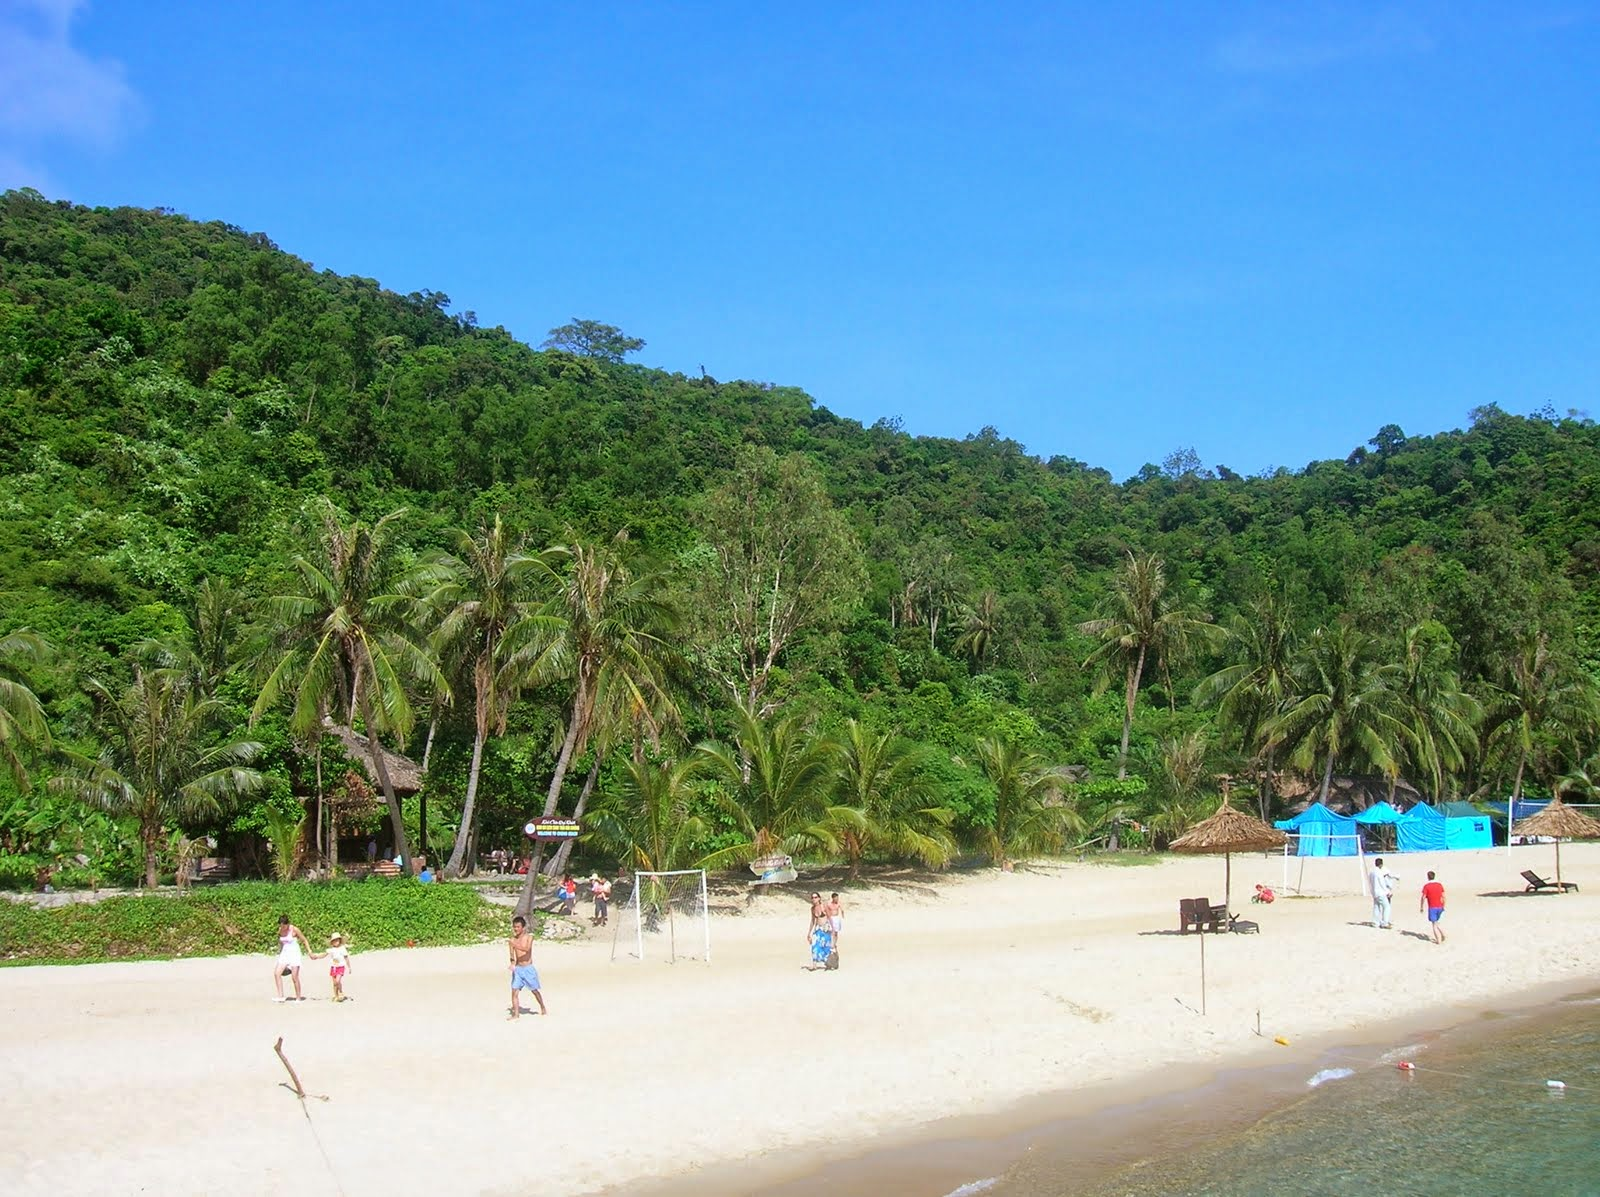 Duc me con so long beach - After The Snorkeling Tour Huynh Duc Took Us To See The Beaches With Pristine Beauty Such As Bai Lang Bai Chong And Bai Huong These Beaches Are Always